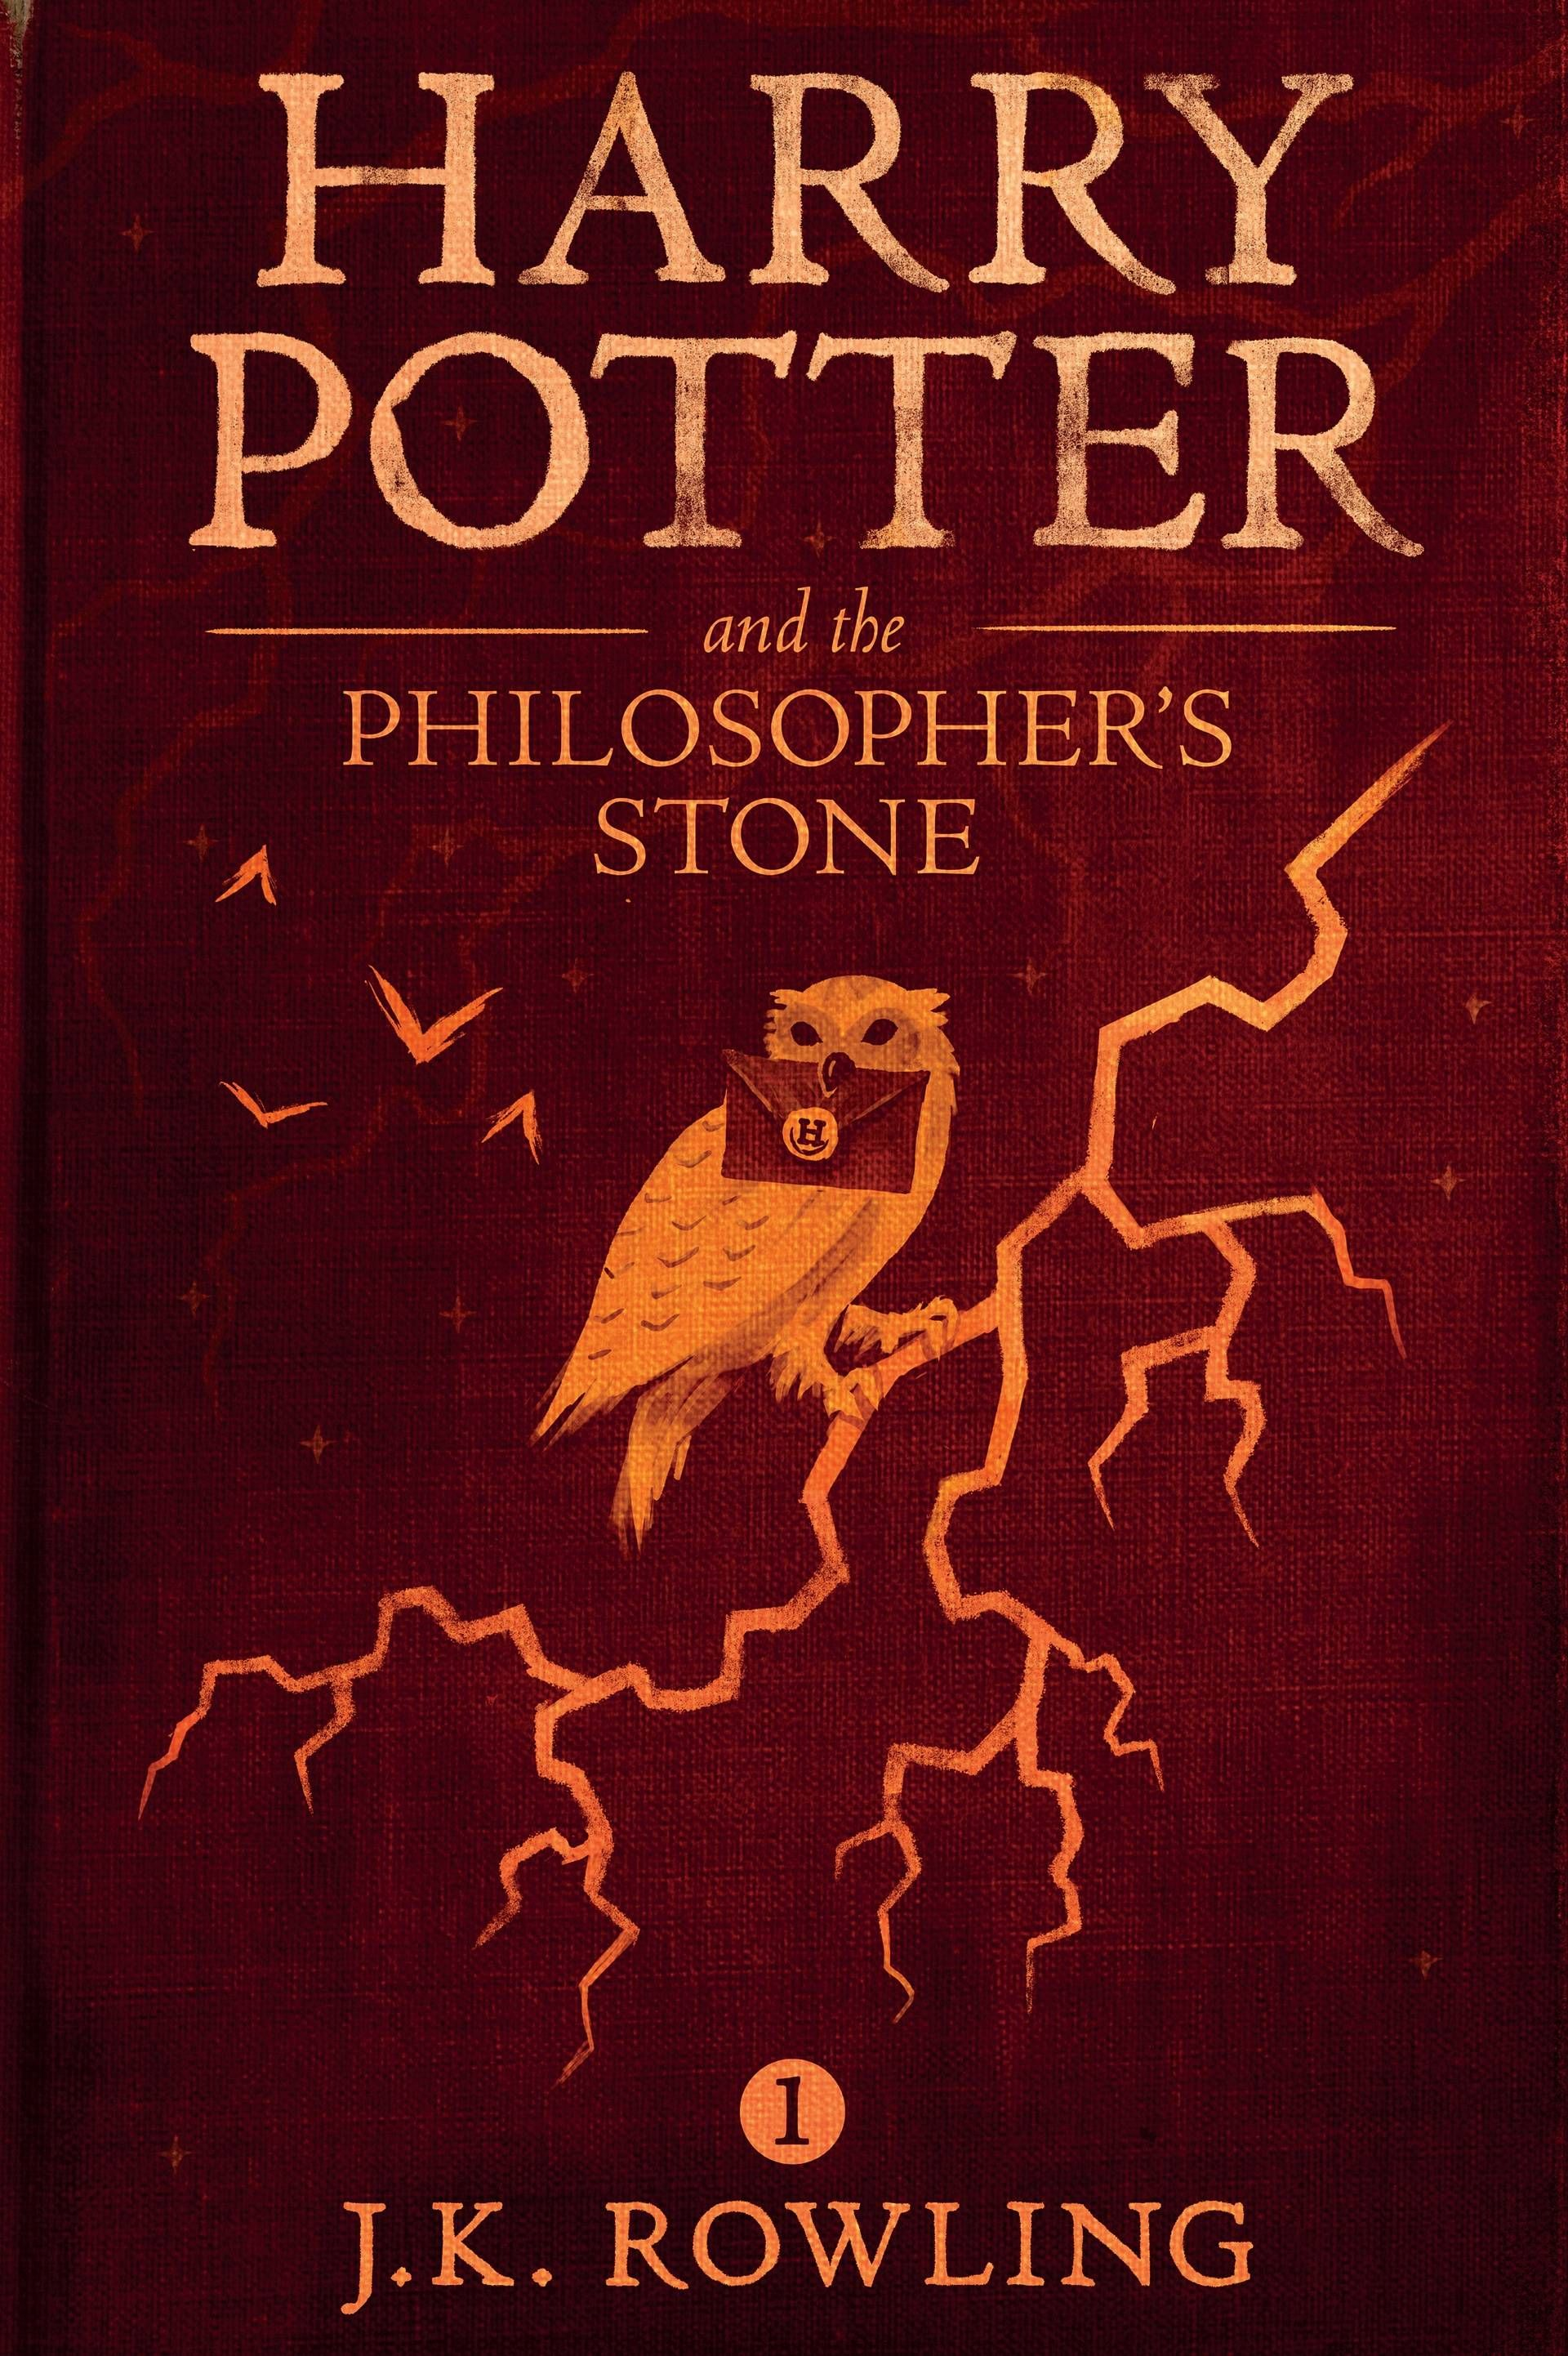 New Harry Potter ebook covers: The Philosopher's Stone (from Imgur ...